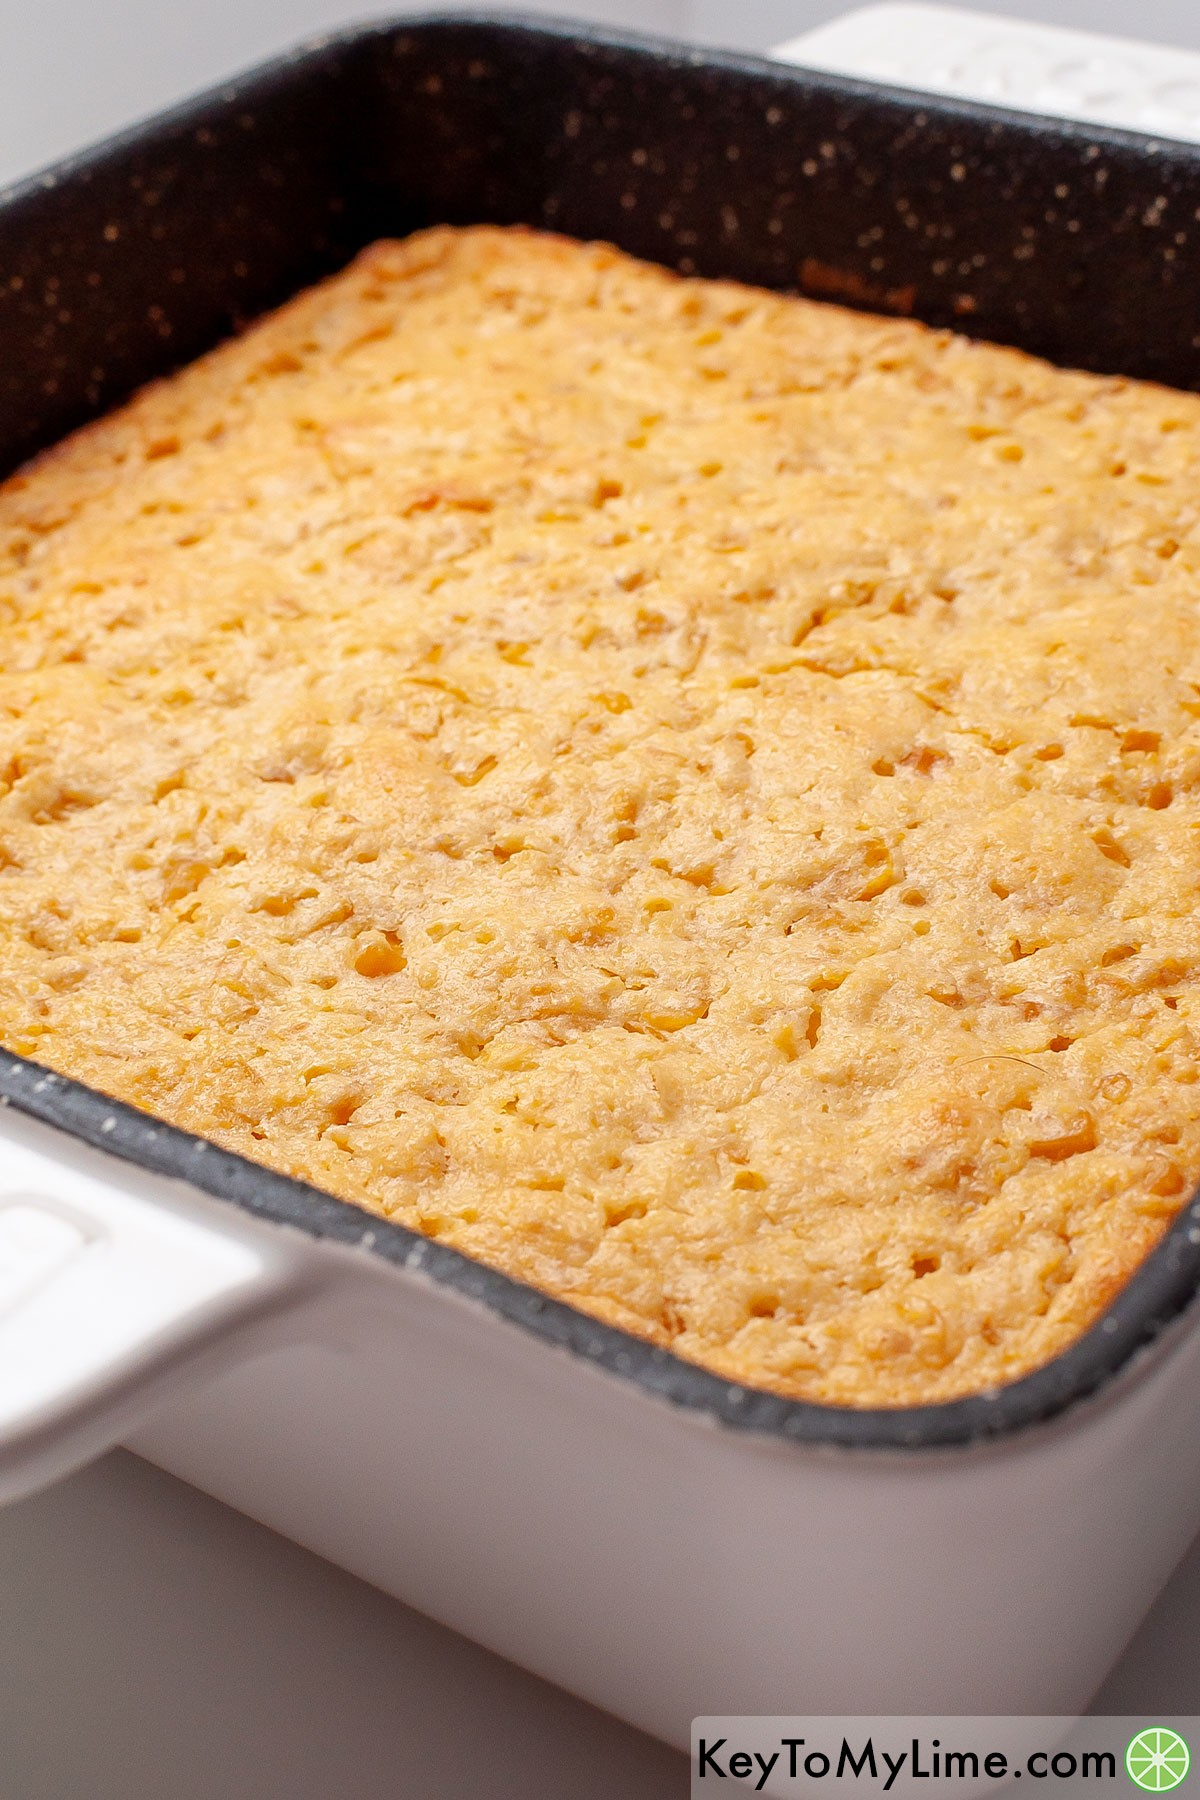 A close up image of corn casserole in a baking dish.